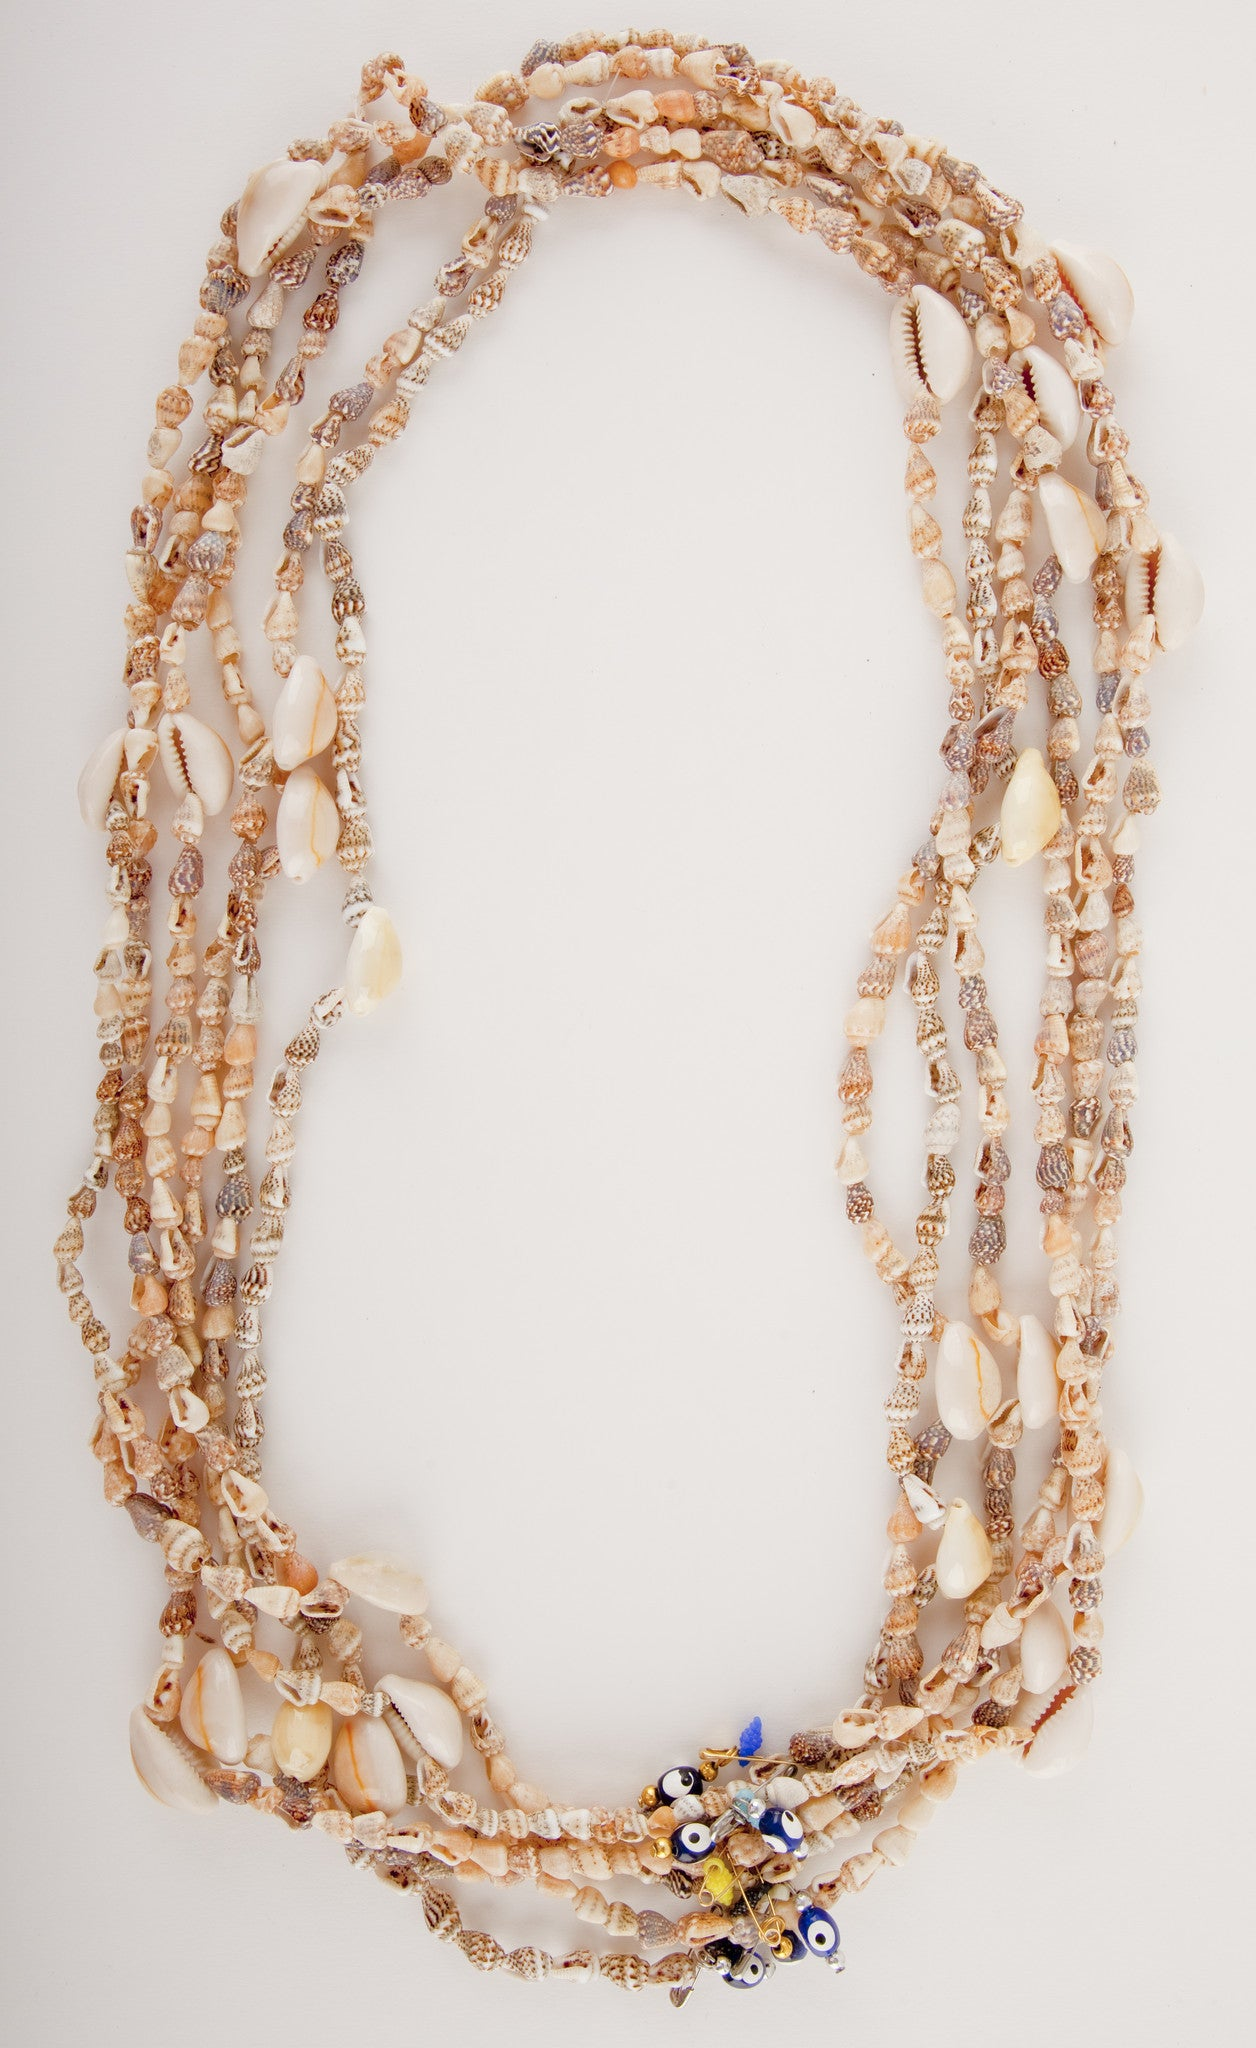 MERAKI BY WANDERLISTA <br> Fiji Shell Necklace With Evil Eye Charm